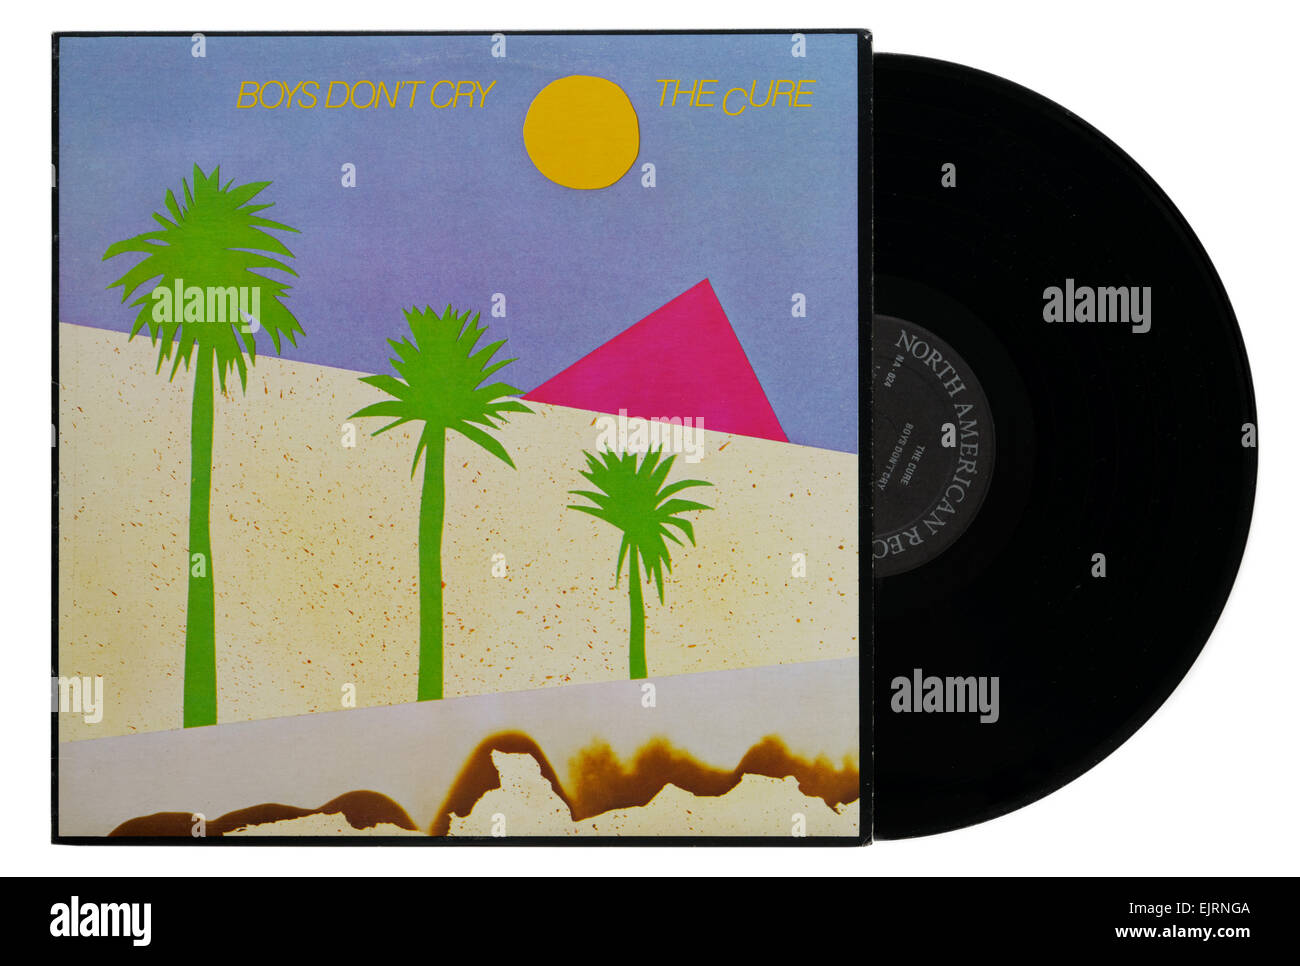 The Cure album Boys Don't Cry - Stock Image